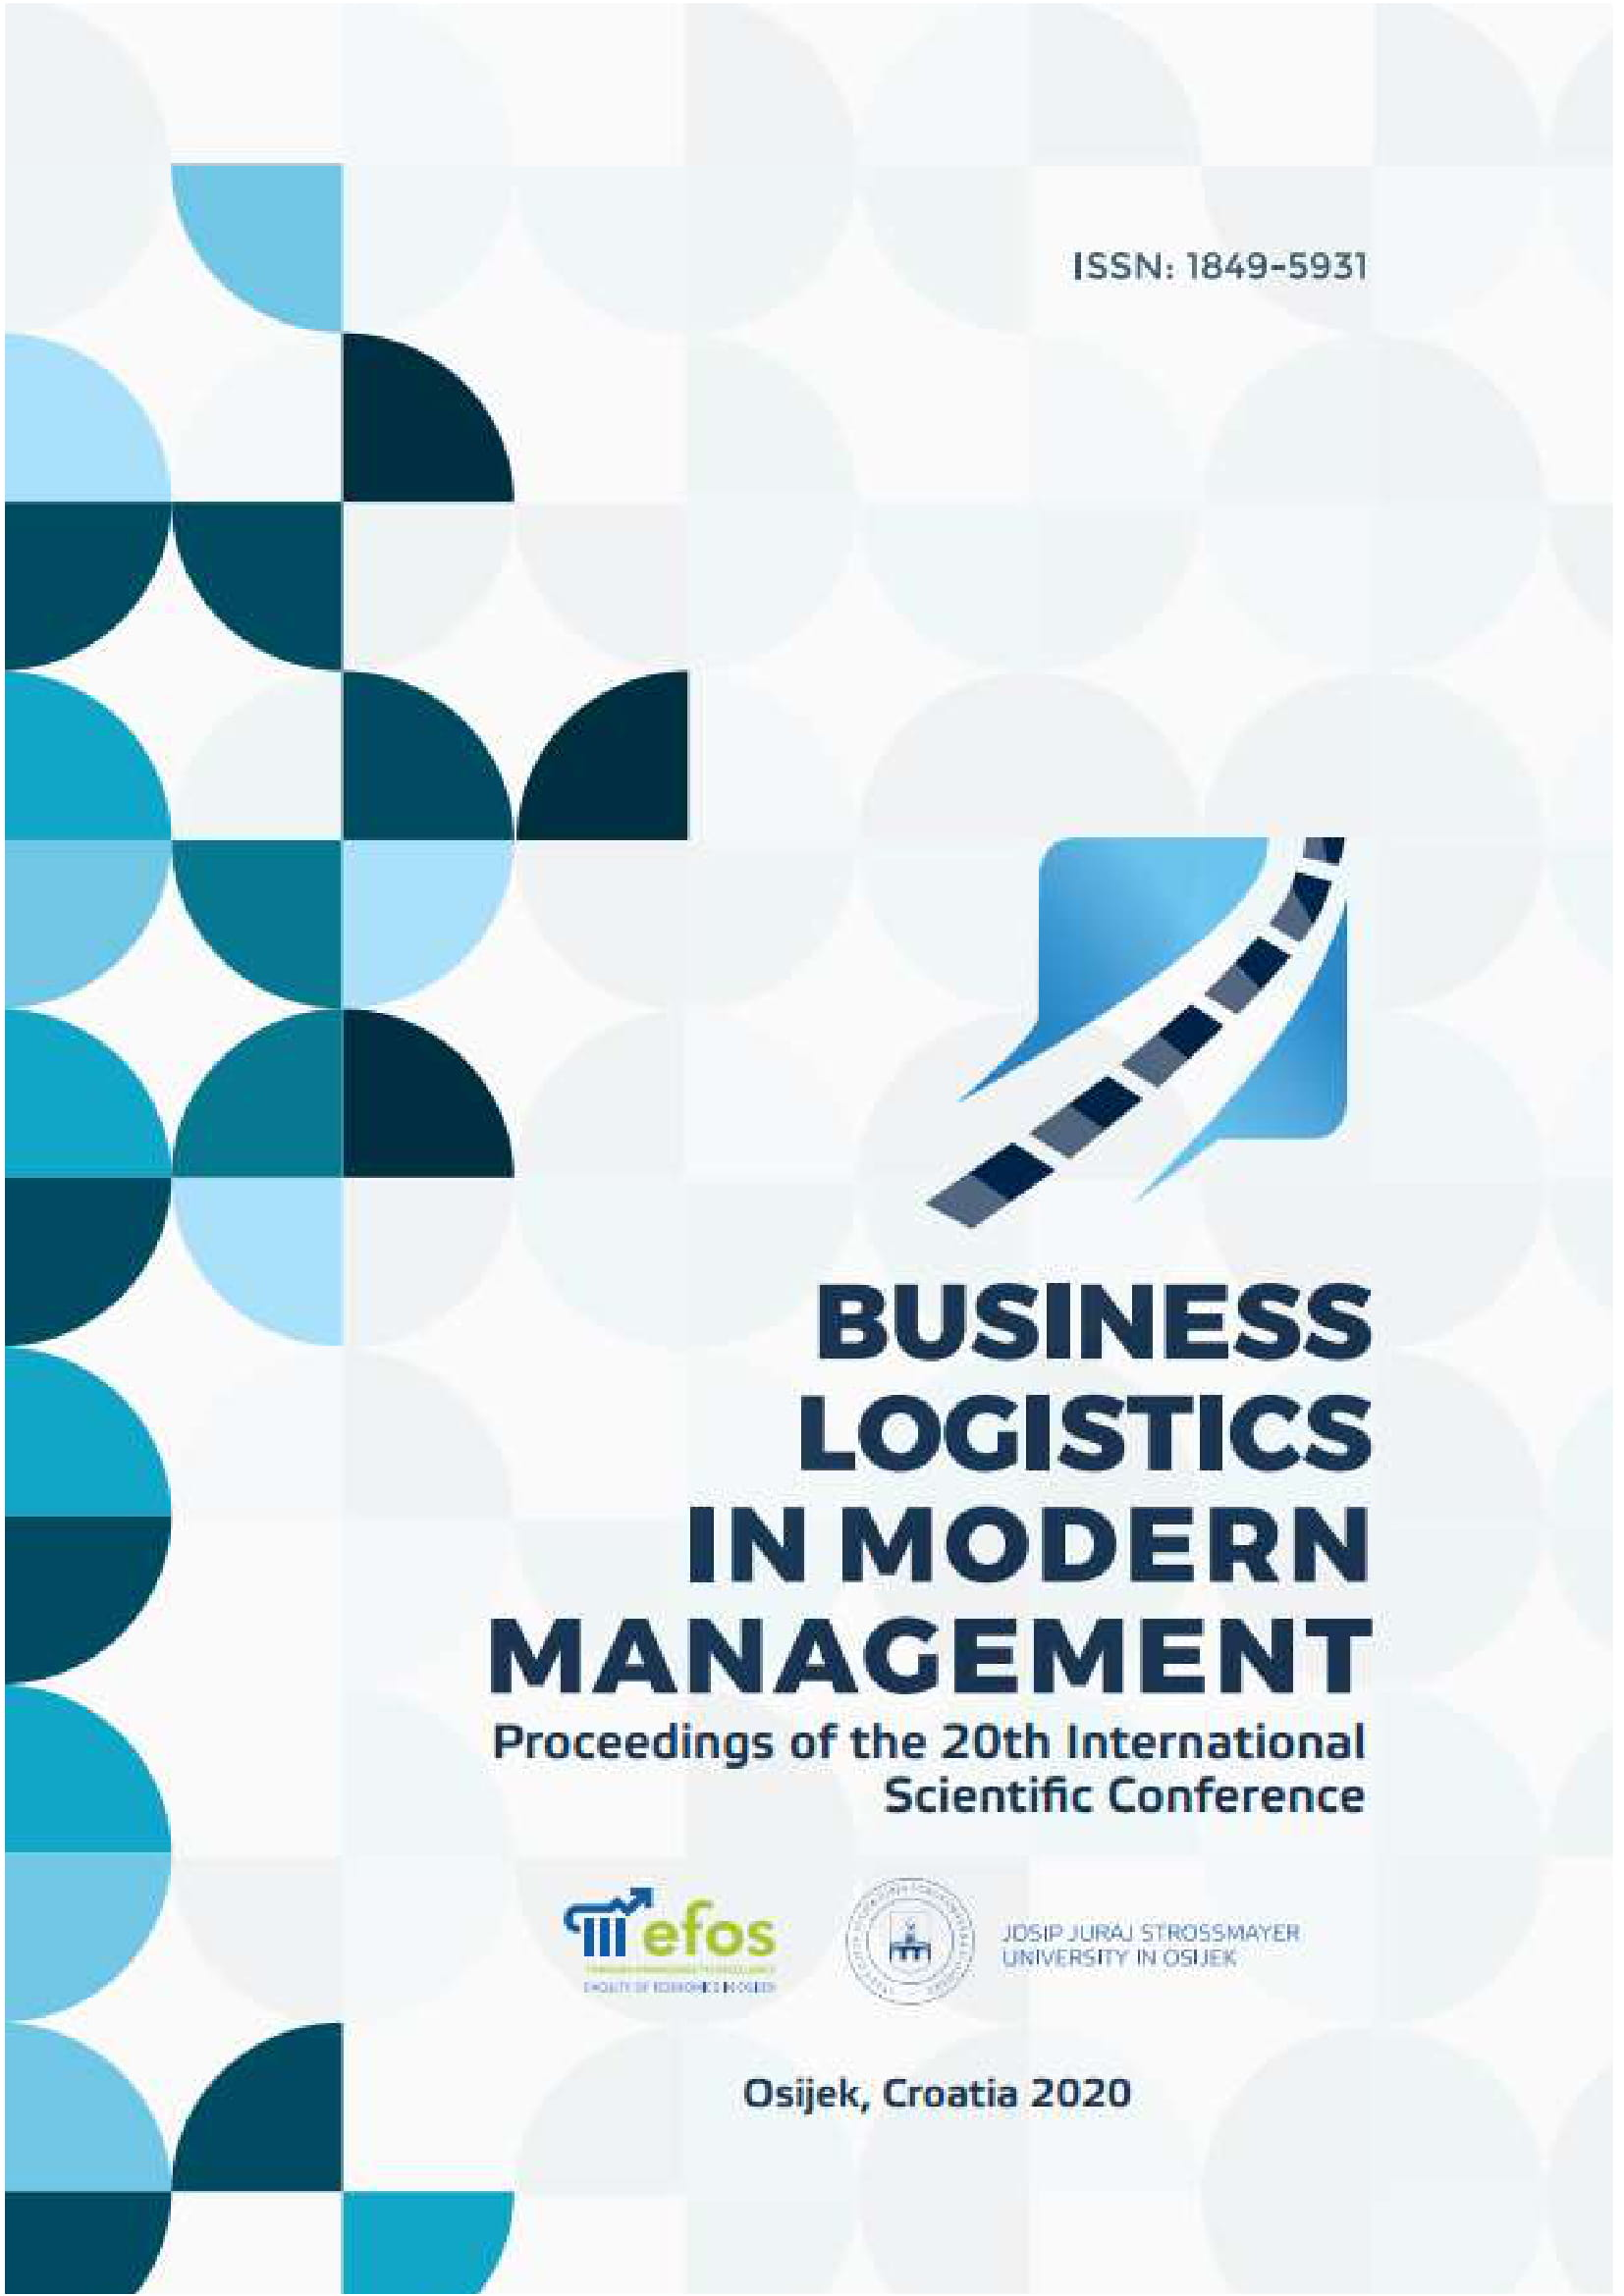 View 2020: Proceedings of The 20th International Scientific Conference Business Logistics in Modern Management